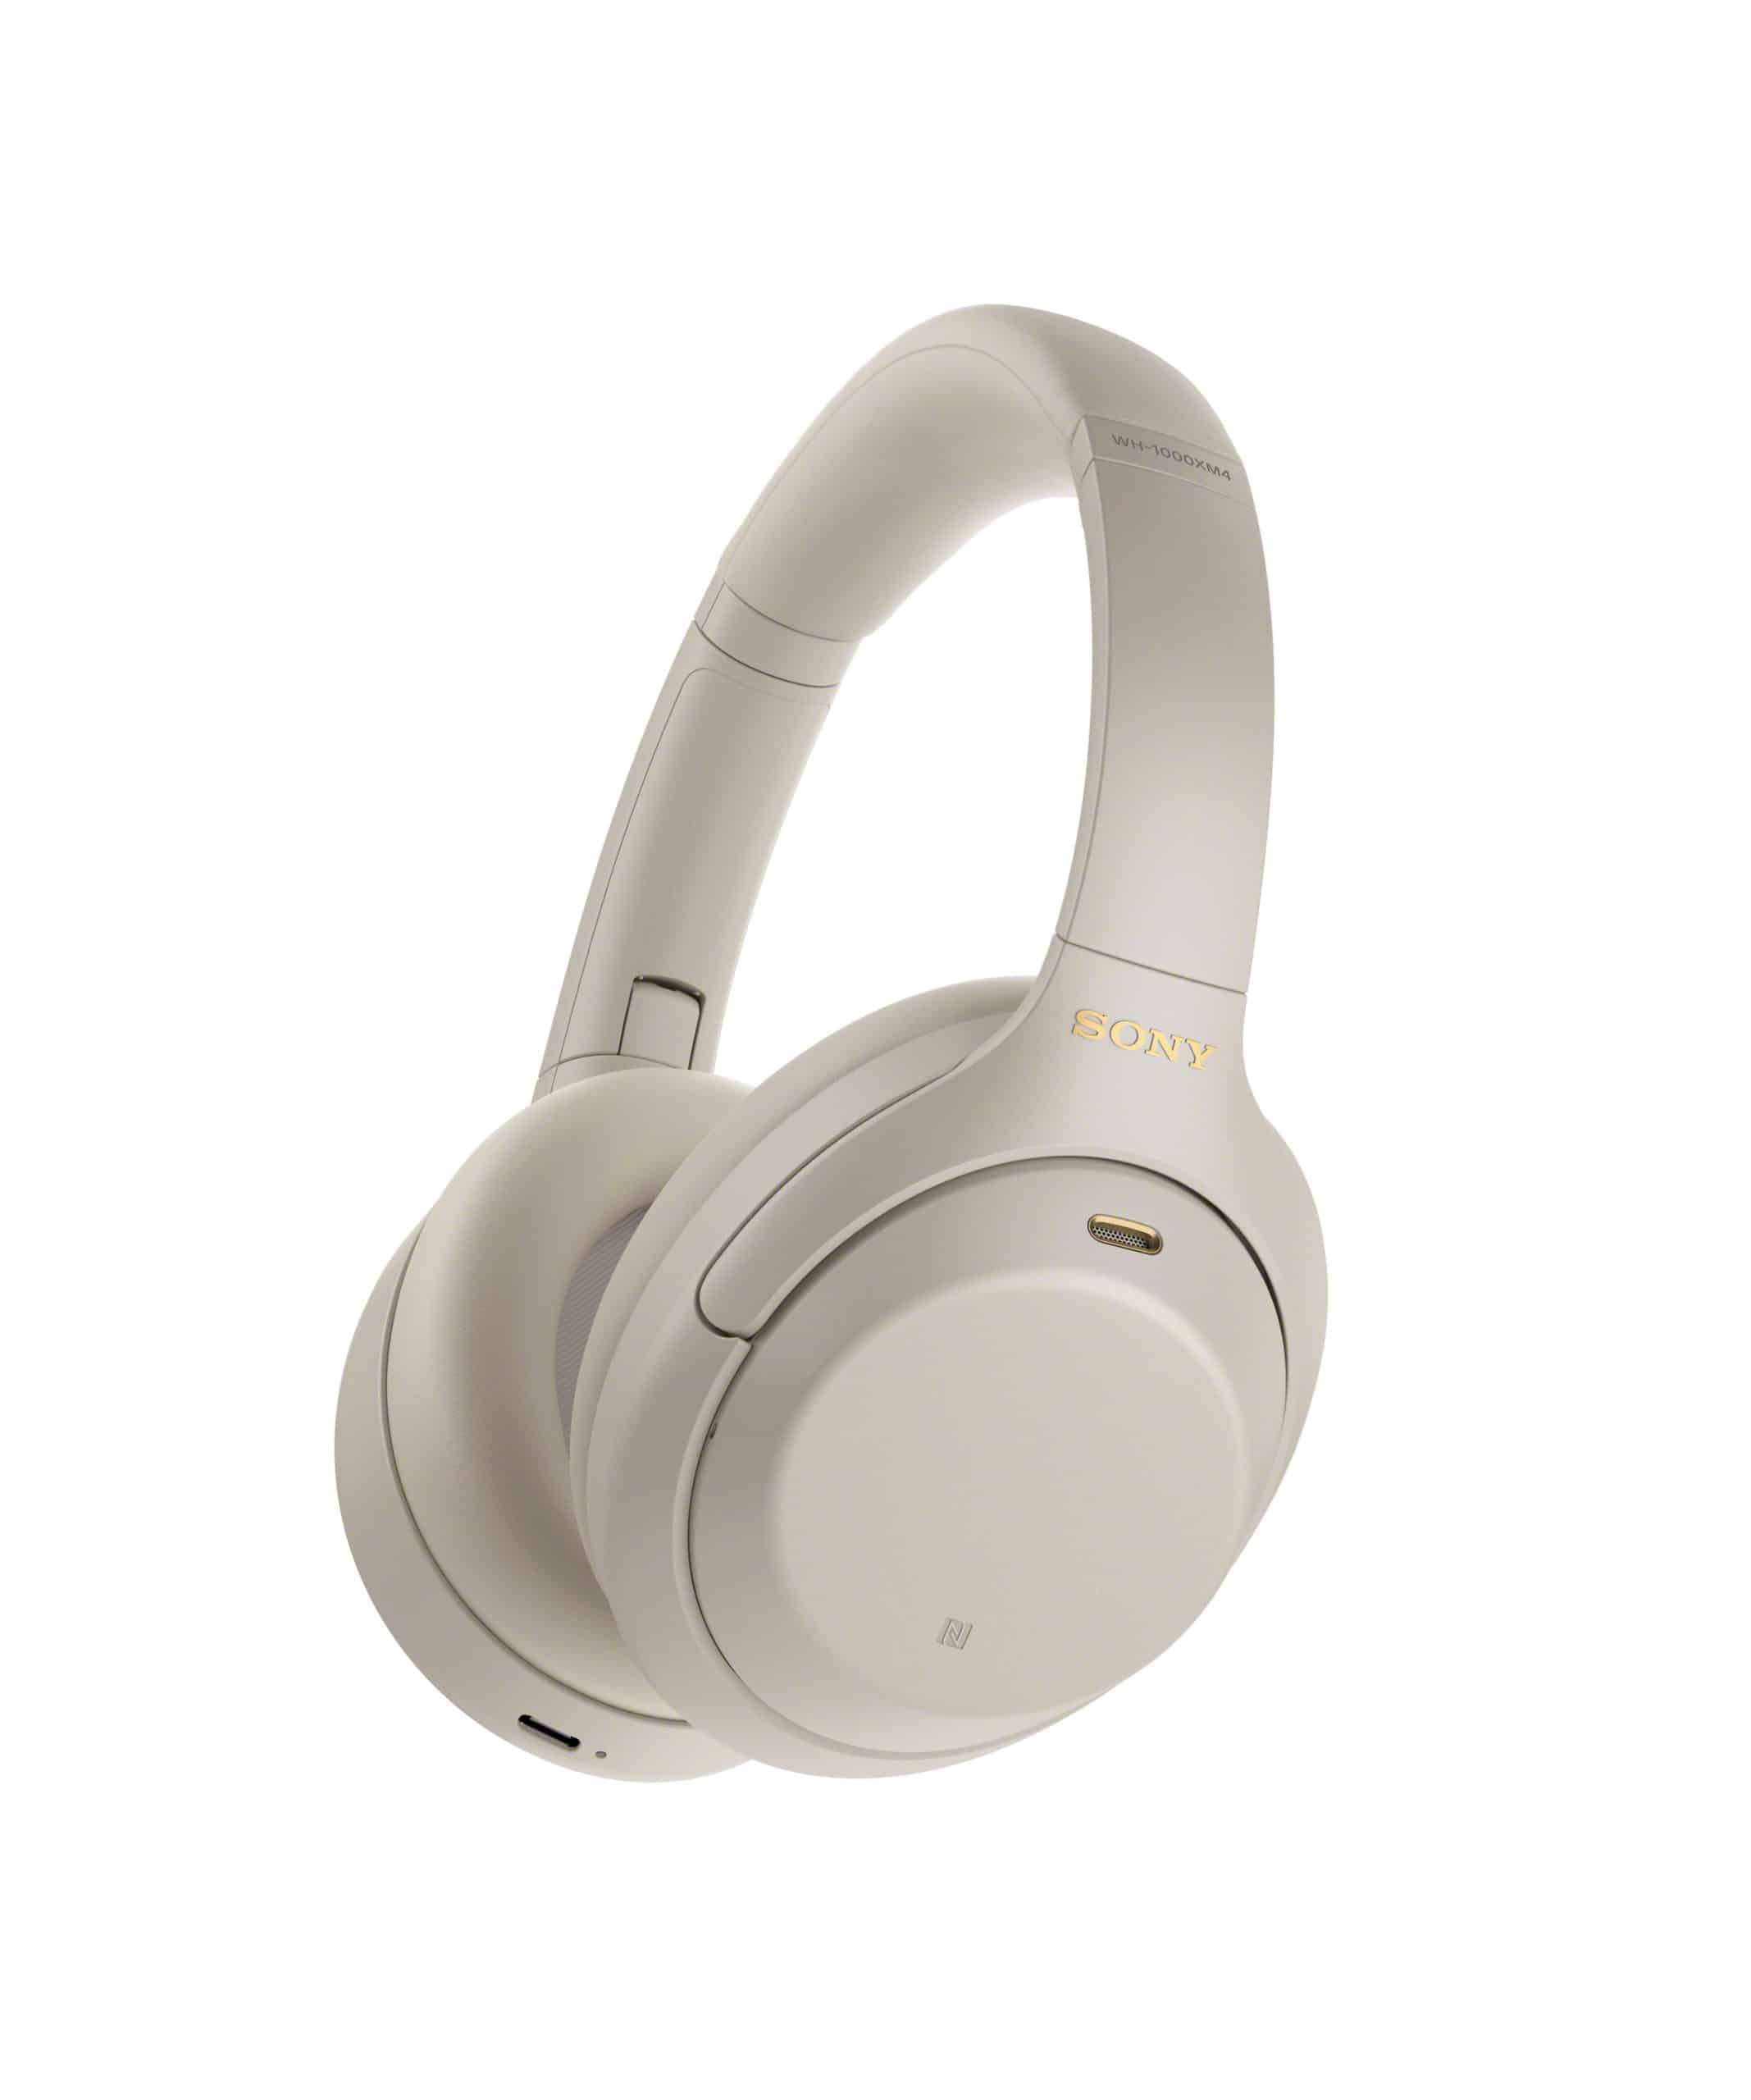 Sony WH 1000XM4 Headphones 19